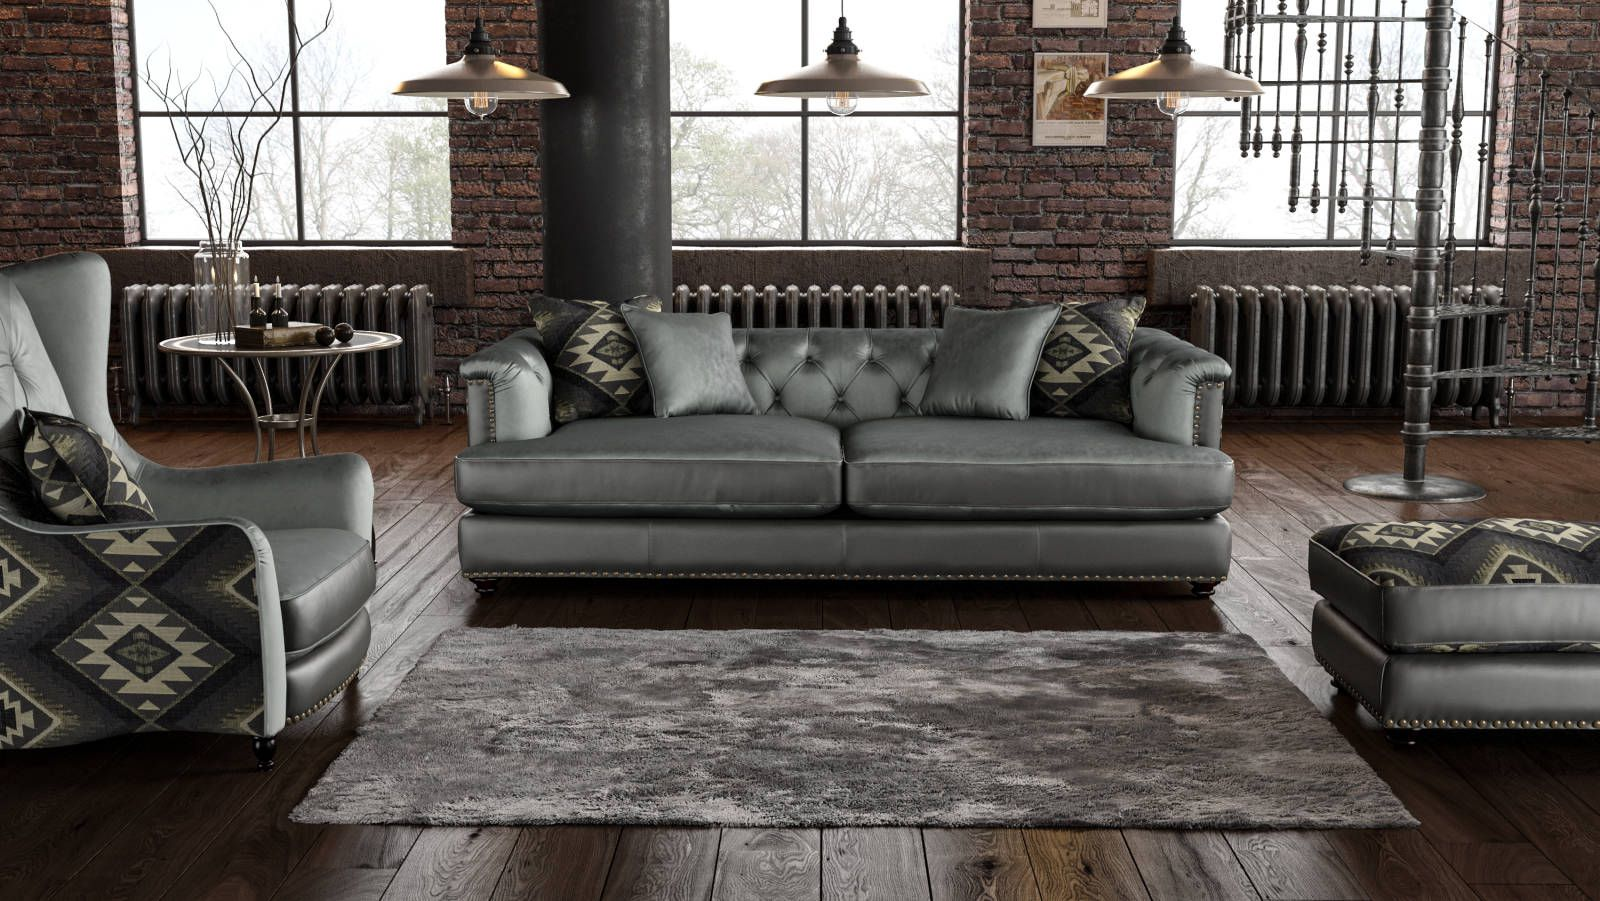 Sofology Online Support Bayswater Sofology Interior Design Sofa Sofa Workshop